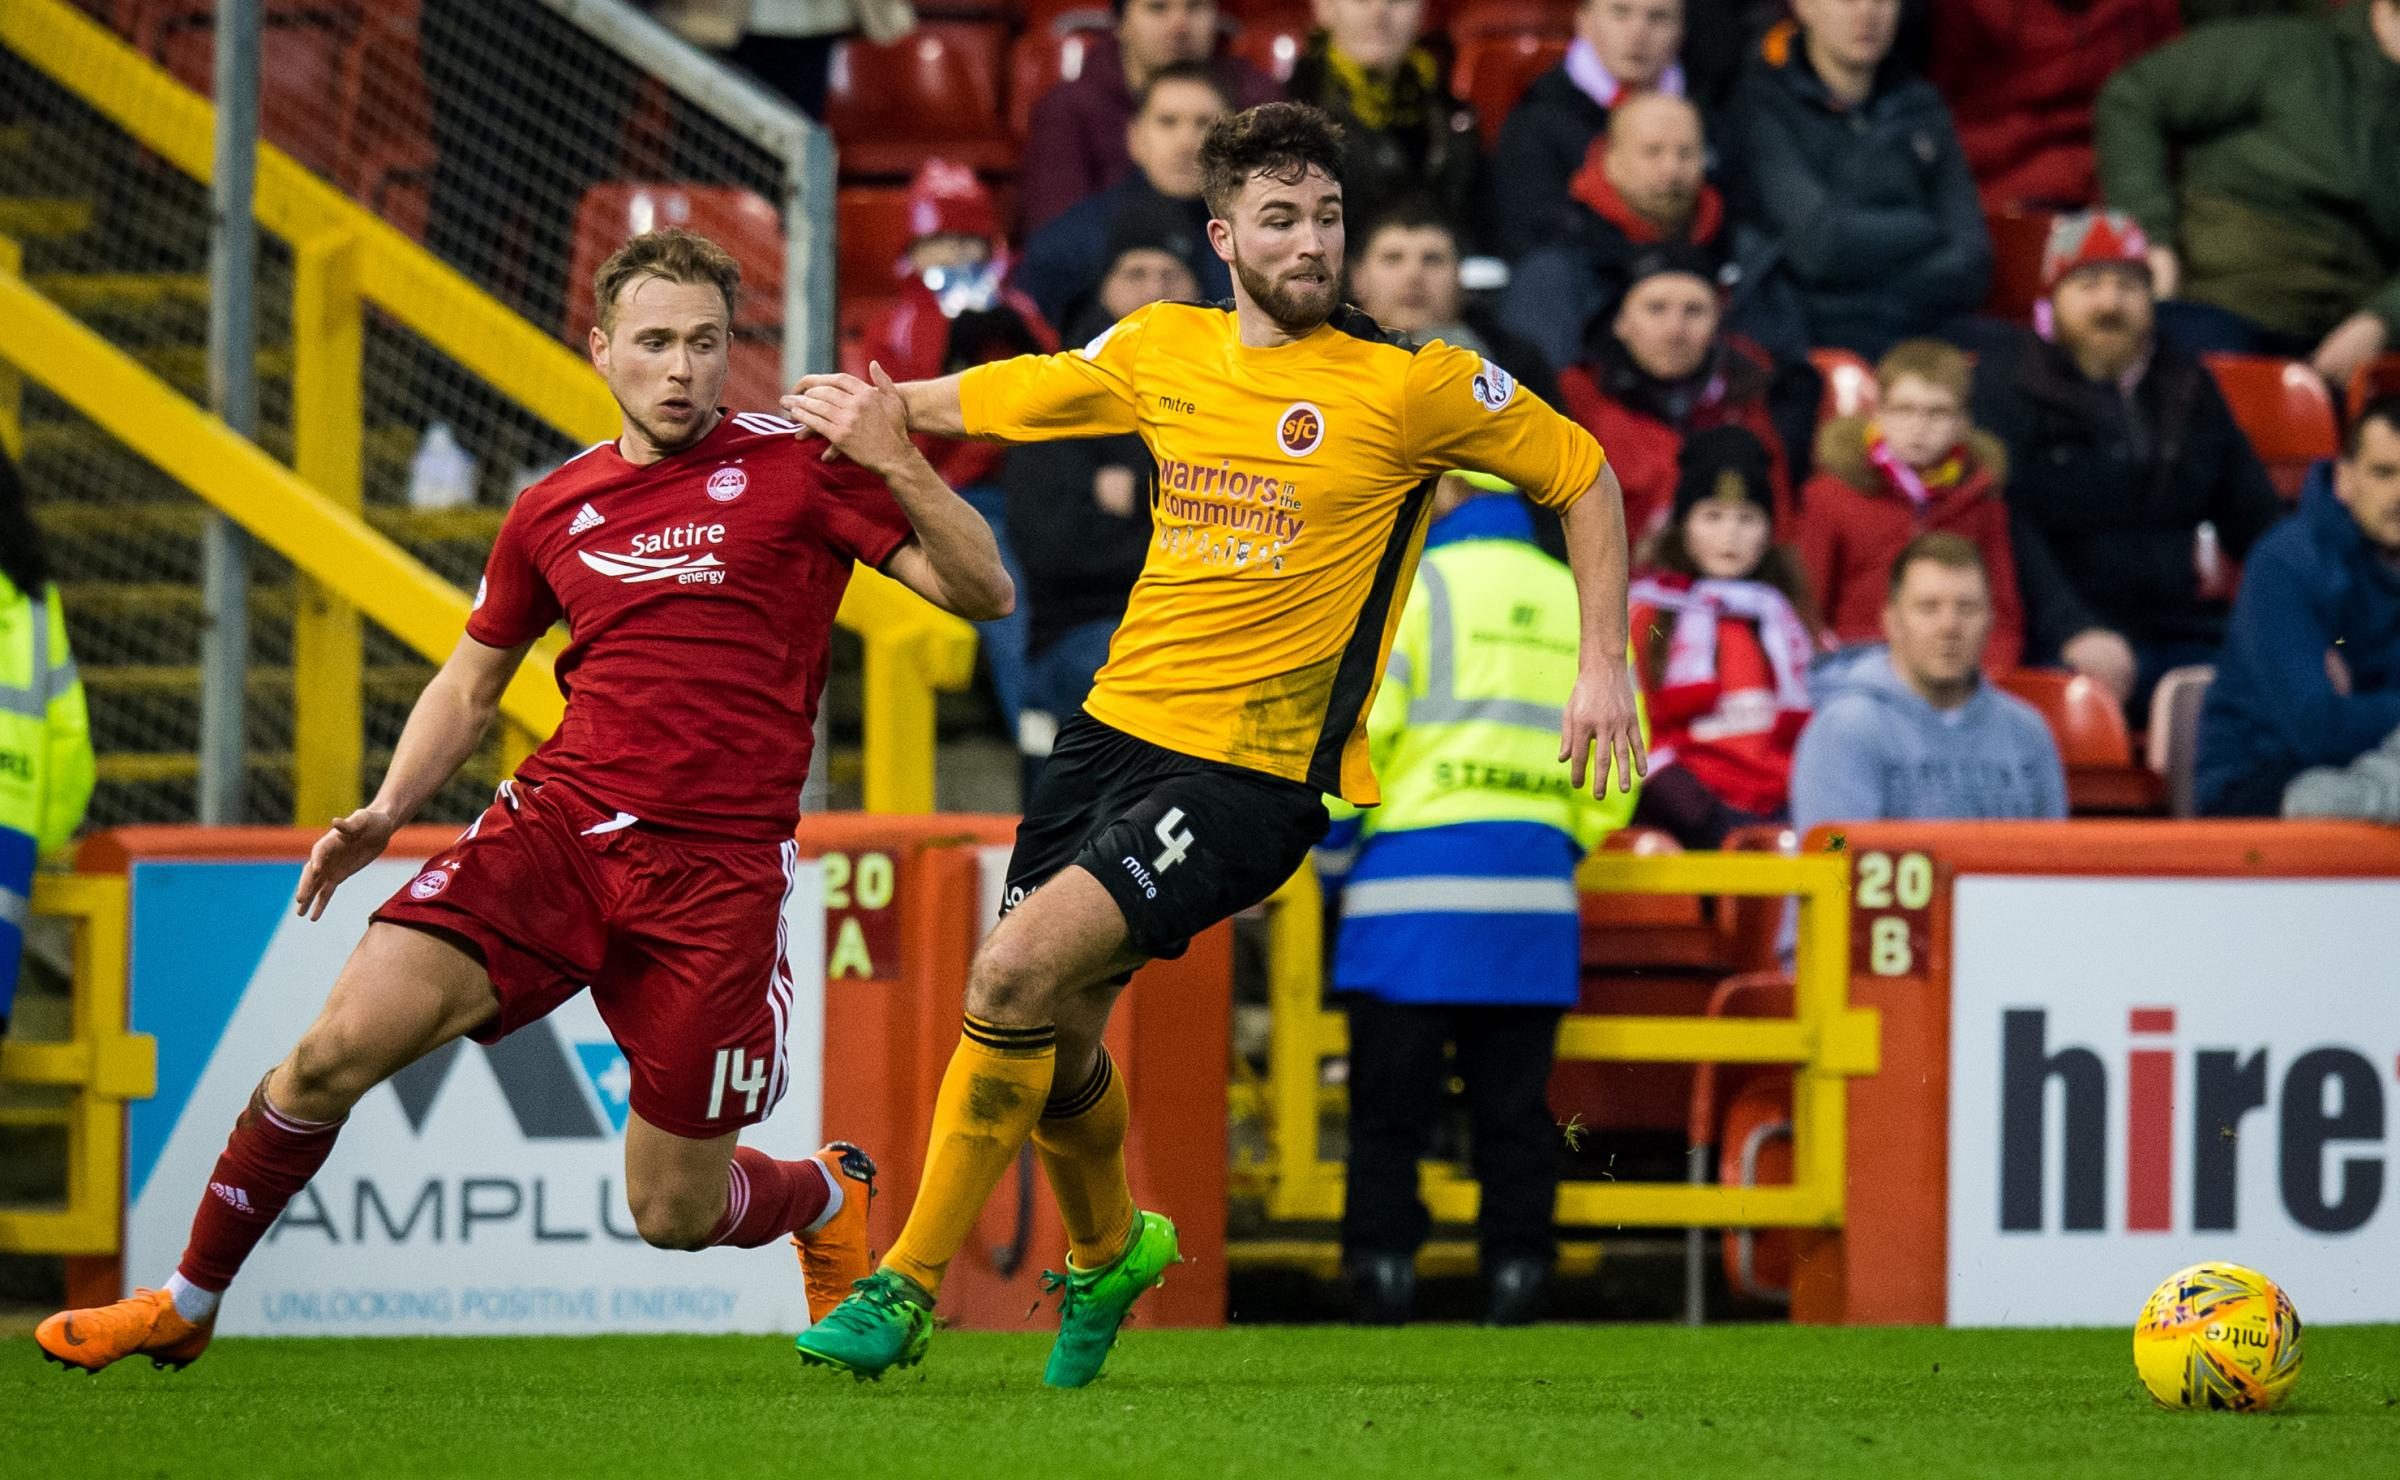 Greg Stewart makes his debut for Aberdeen against Stenhousemuir in the fourth round of the Scottish Cup